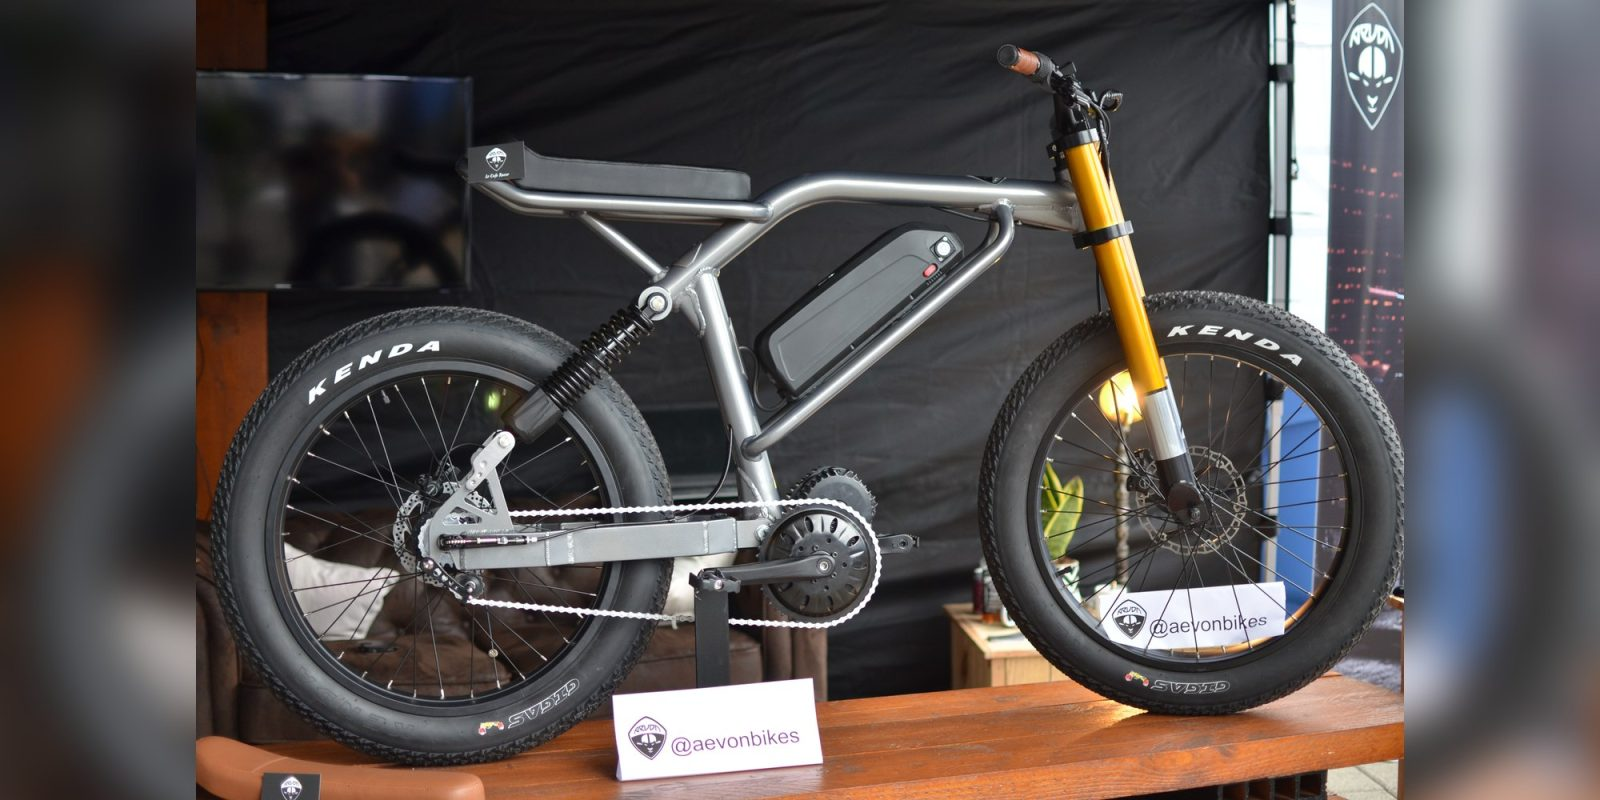 Aevon shows off Le Cafe Racer 31 mph (50 km/h) electric bicycle at Eurobike